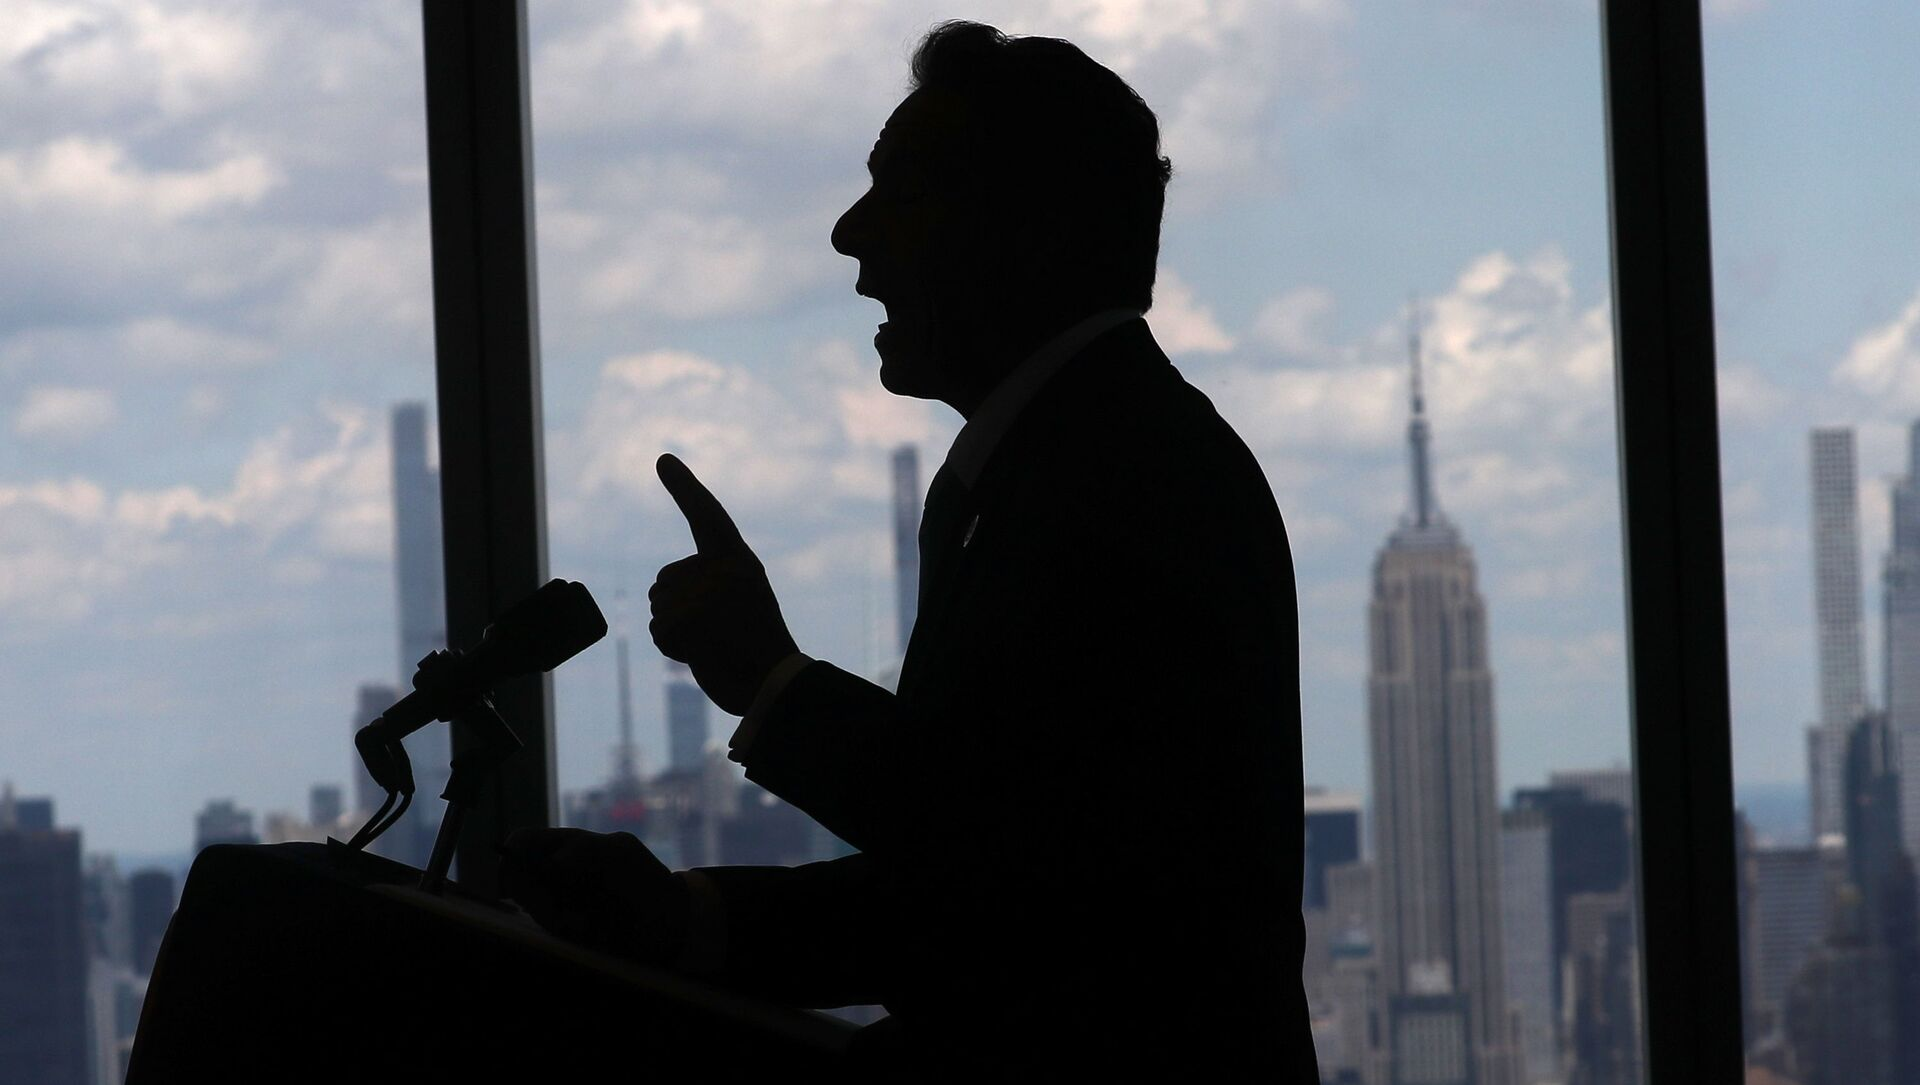 New York Governor Andrew Cuomo speaks with the skyline of Manhattan behind him from the One World Trade Center Tower while making an announcement in New York City, New York, U.S., June 15, 2021. - Sputnik International, 1920, 04.08.2021